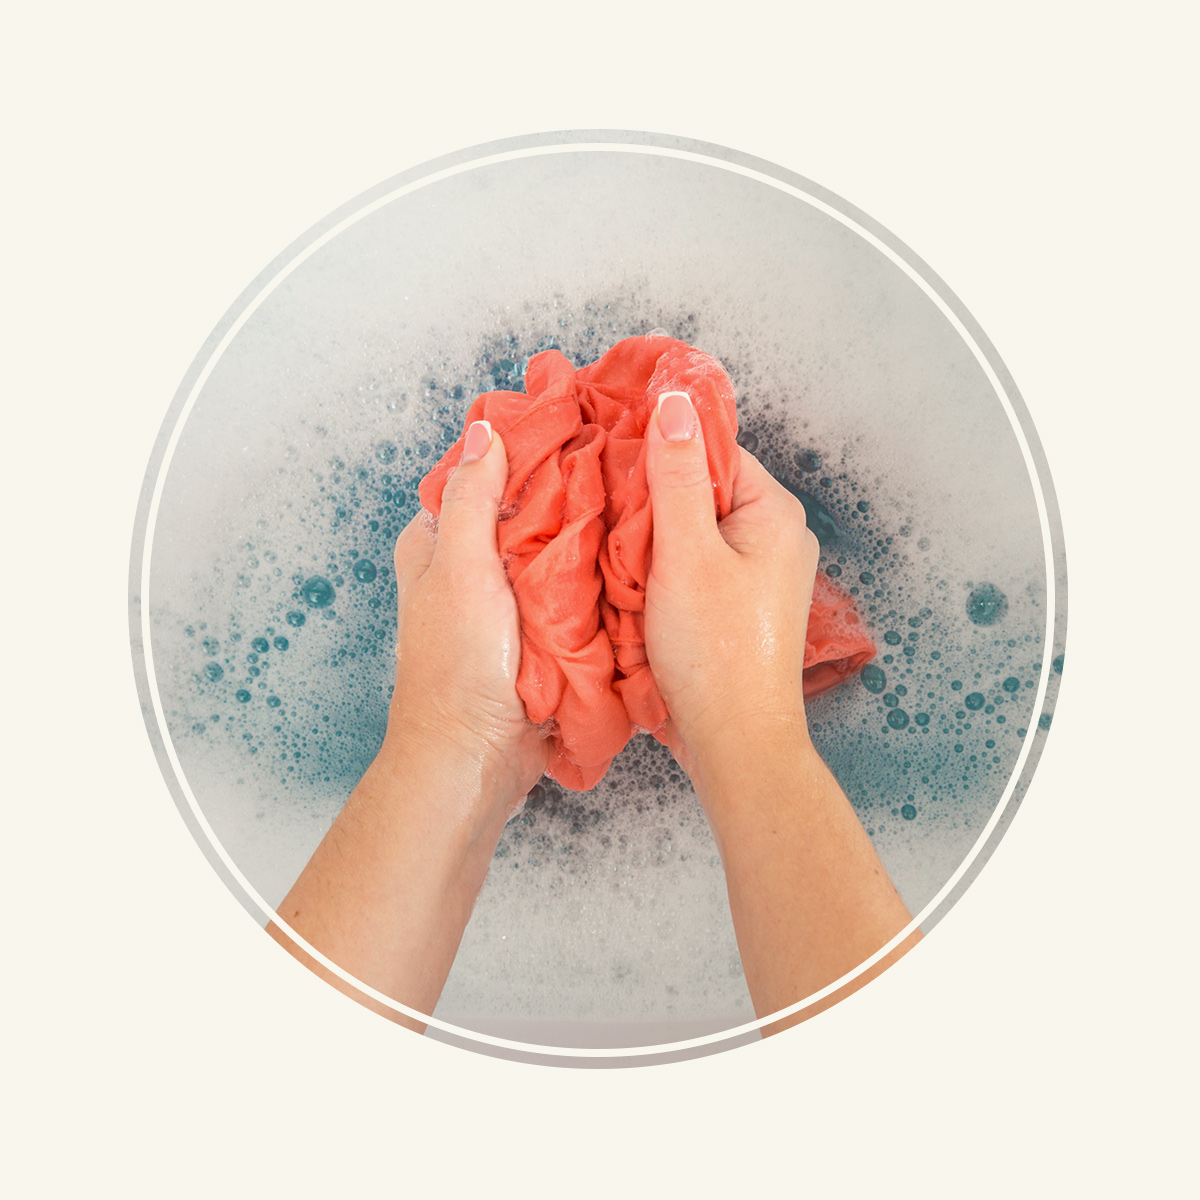 Close up of a woman's hand washing a pink cashmere sweater in soapy water.